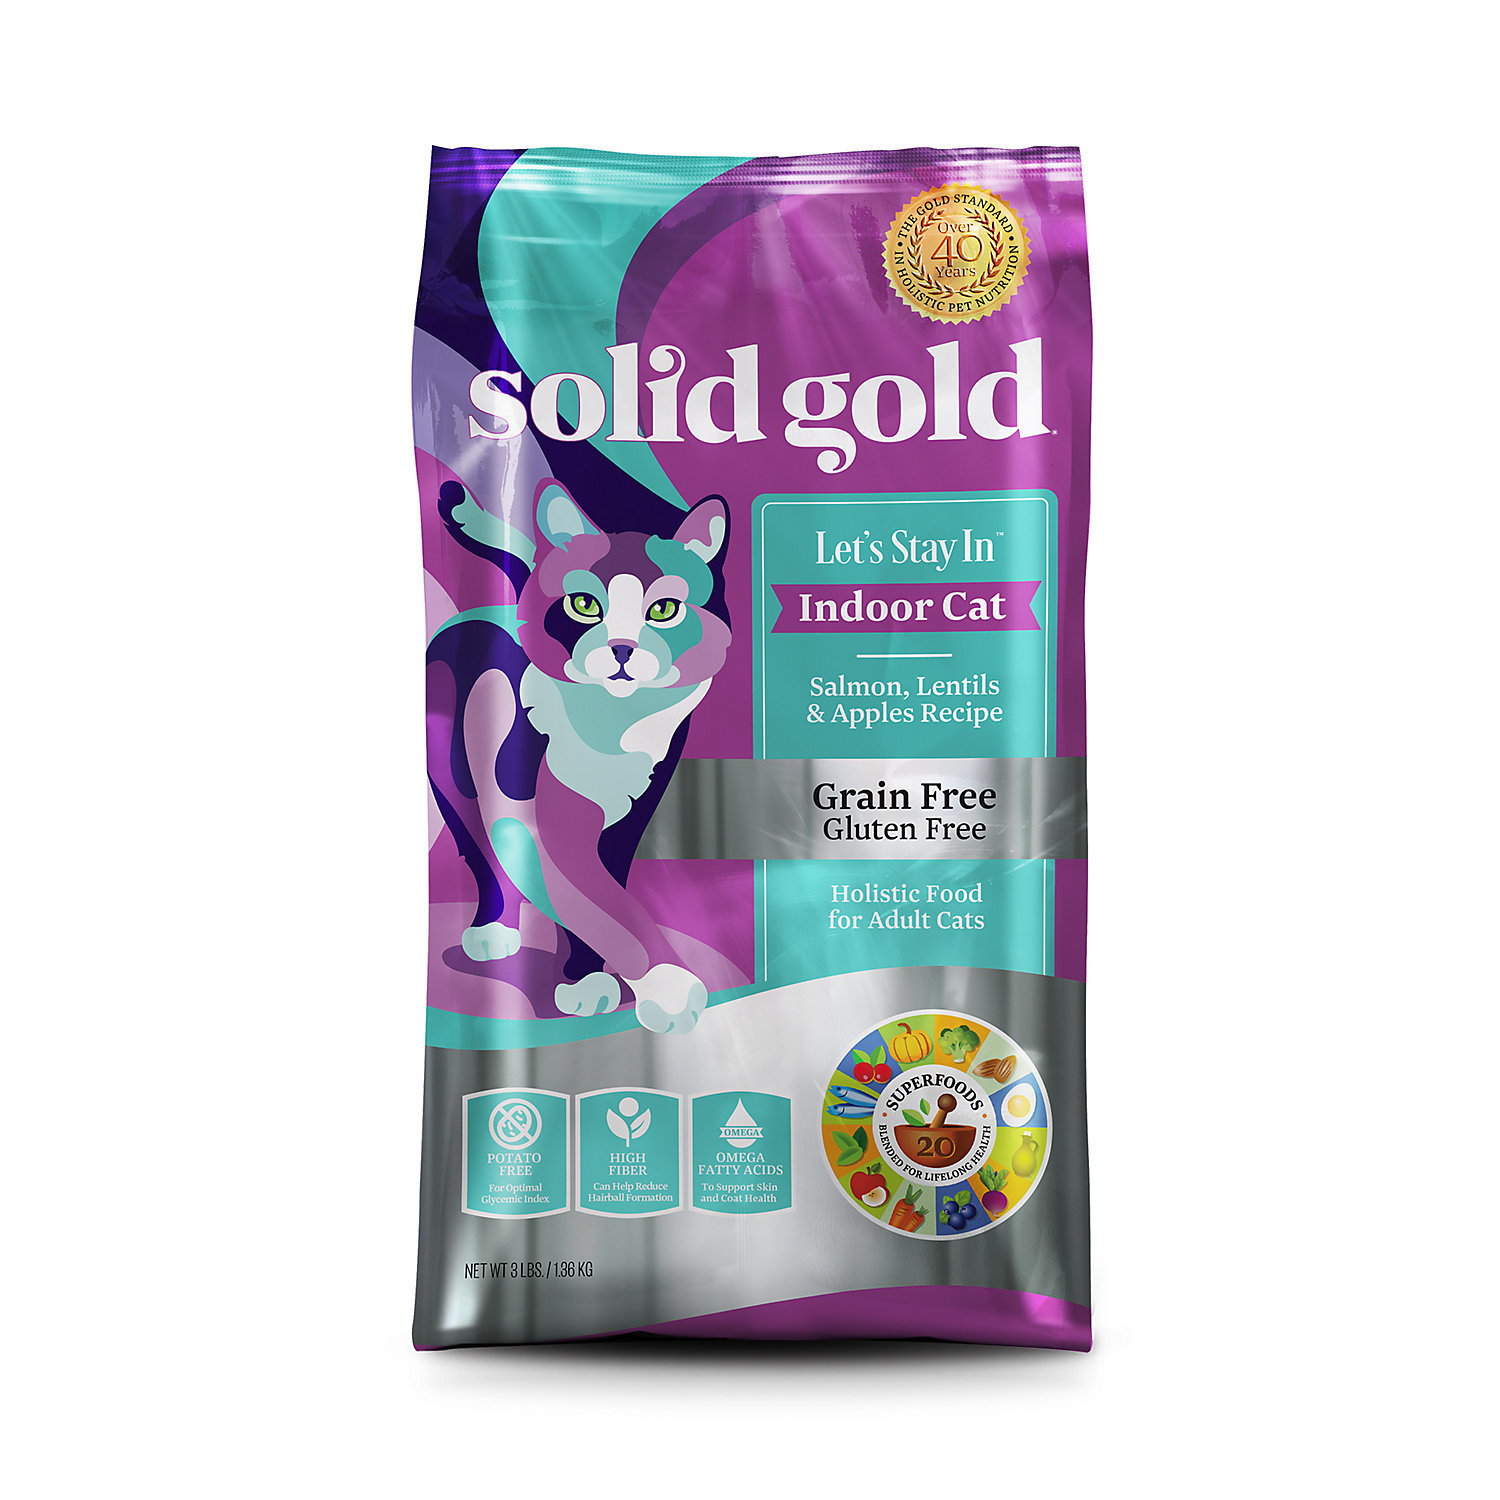 Solid Gold Let's Stay In Indoor Cat Salmon, Lentil & Apple Recipe for Adult Cats 6 lbs (11/18) (A.O1)